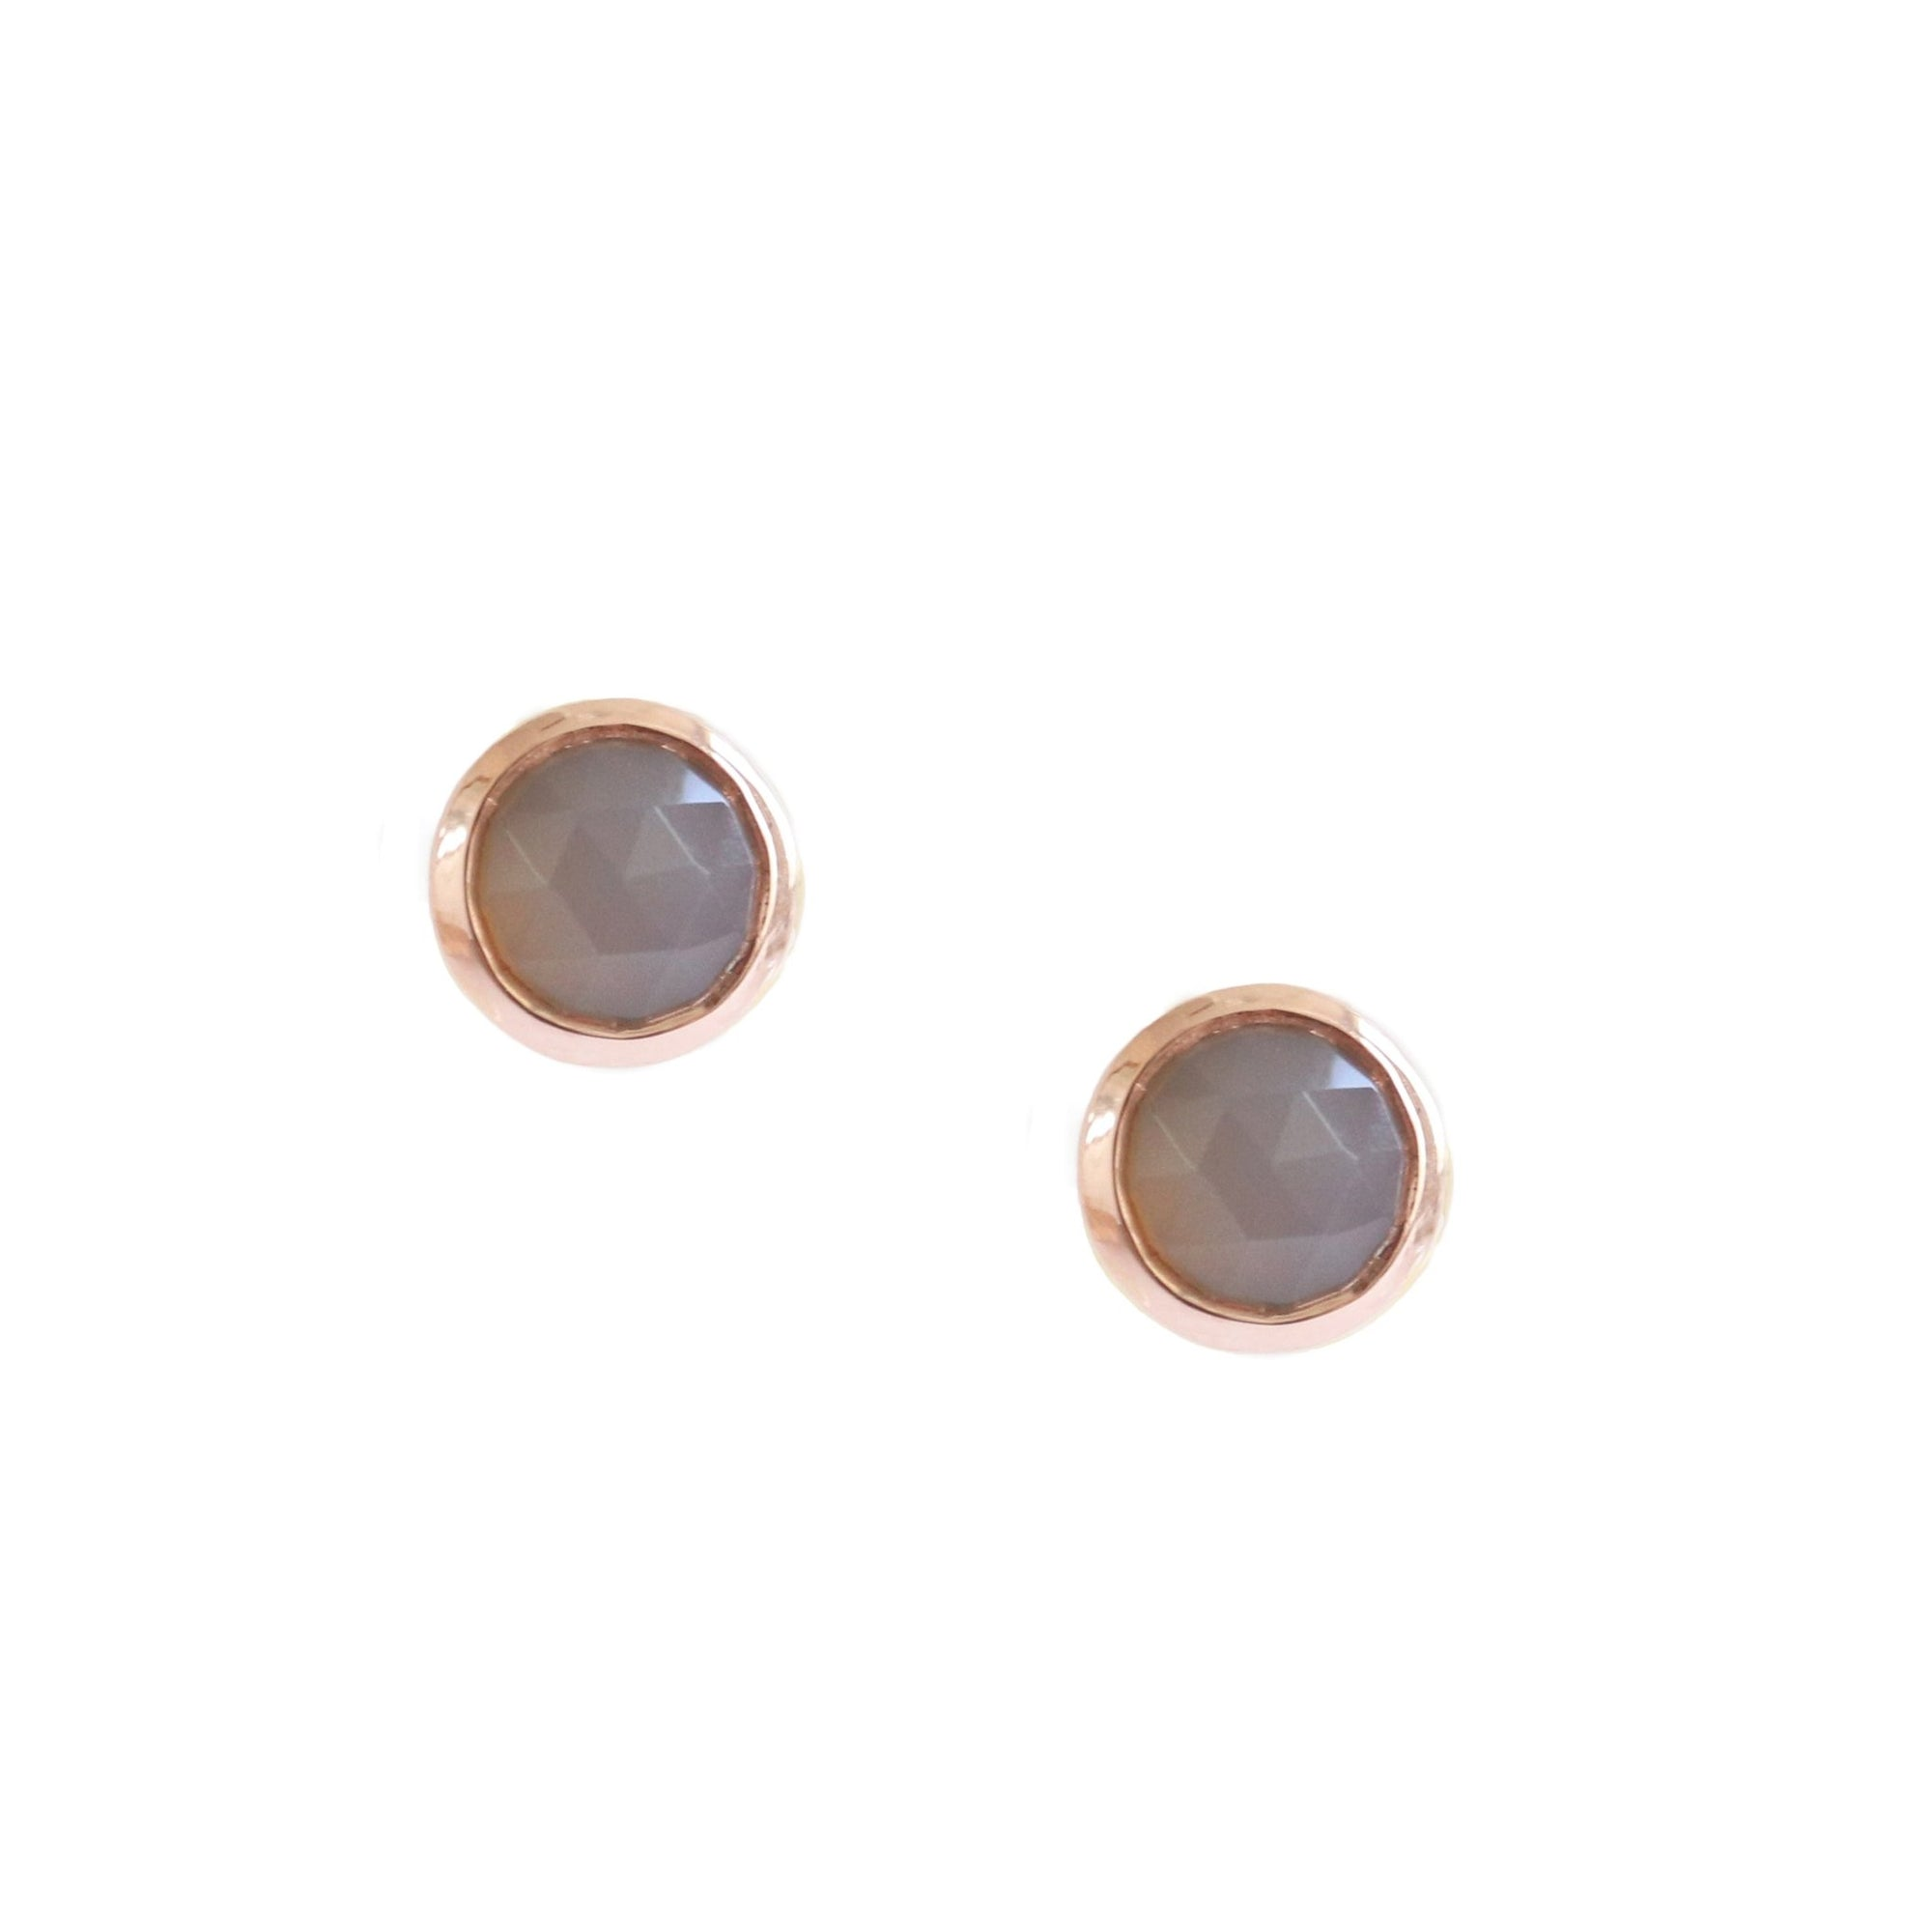 DAINTY LEGACY STUDS - GREY MOONSTONE & ROSE GOLD - SO PRETTY CARA COTTER